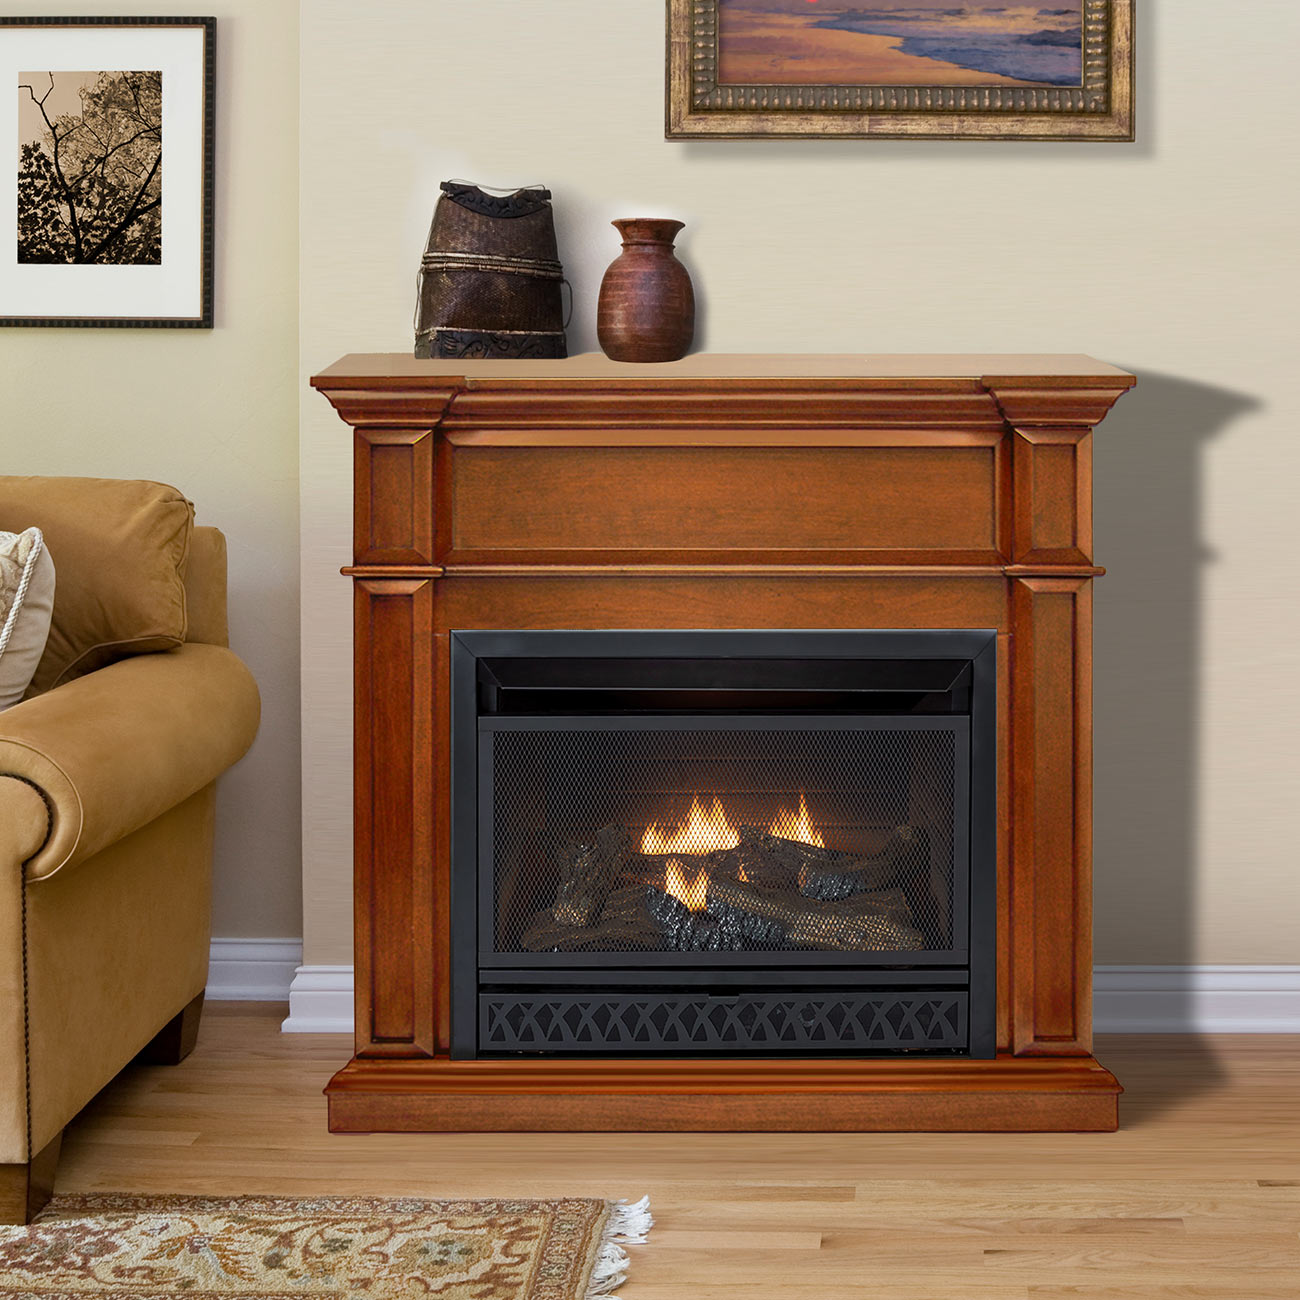 Fireplace Doesnt Heat: HearthSense Ventless Fireplace Are 99.9 Percent Energy